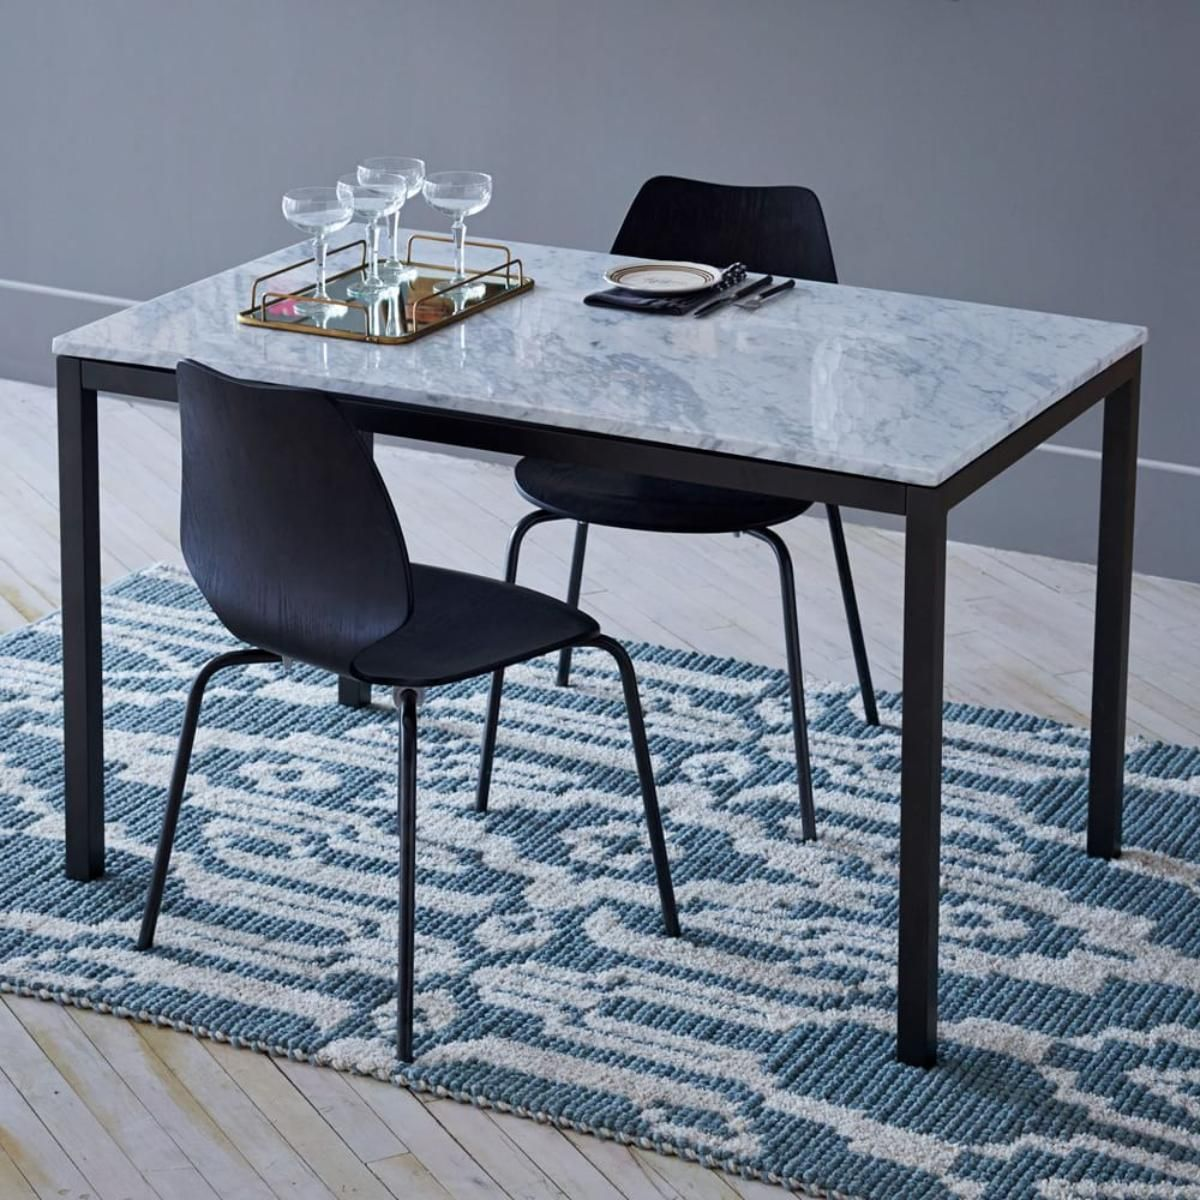 35+ West elm dining table for sale Best Choice